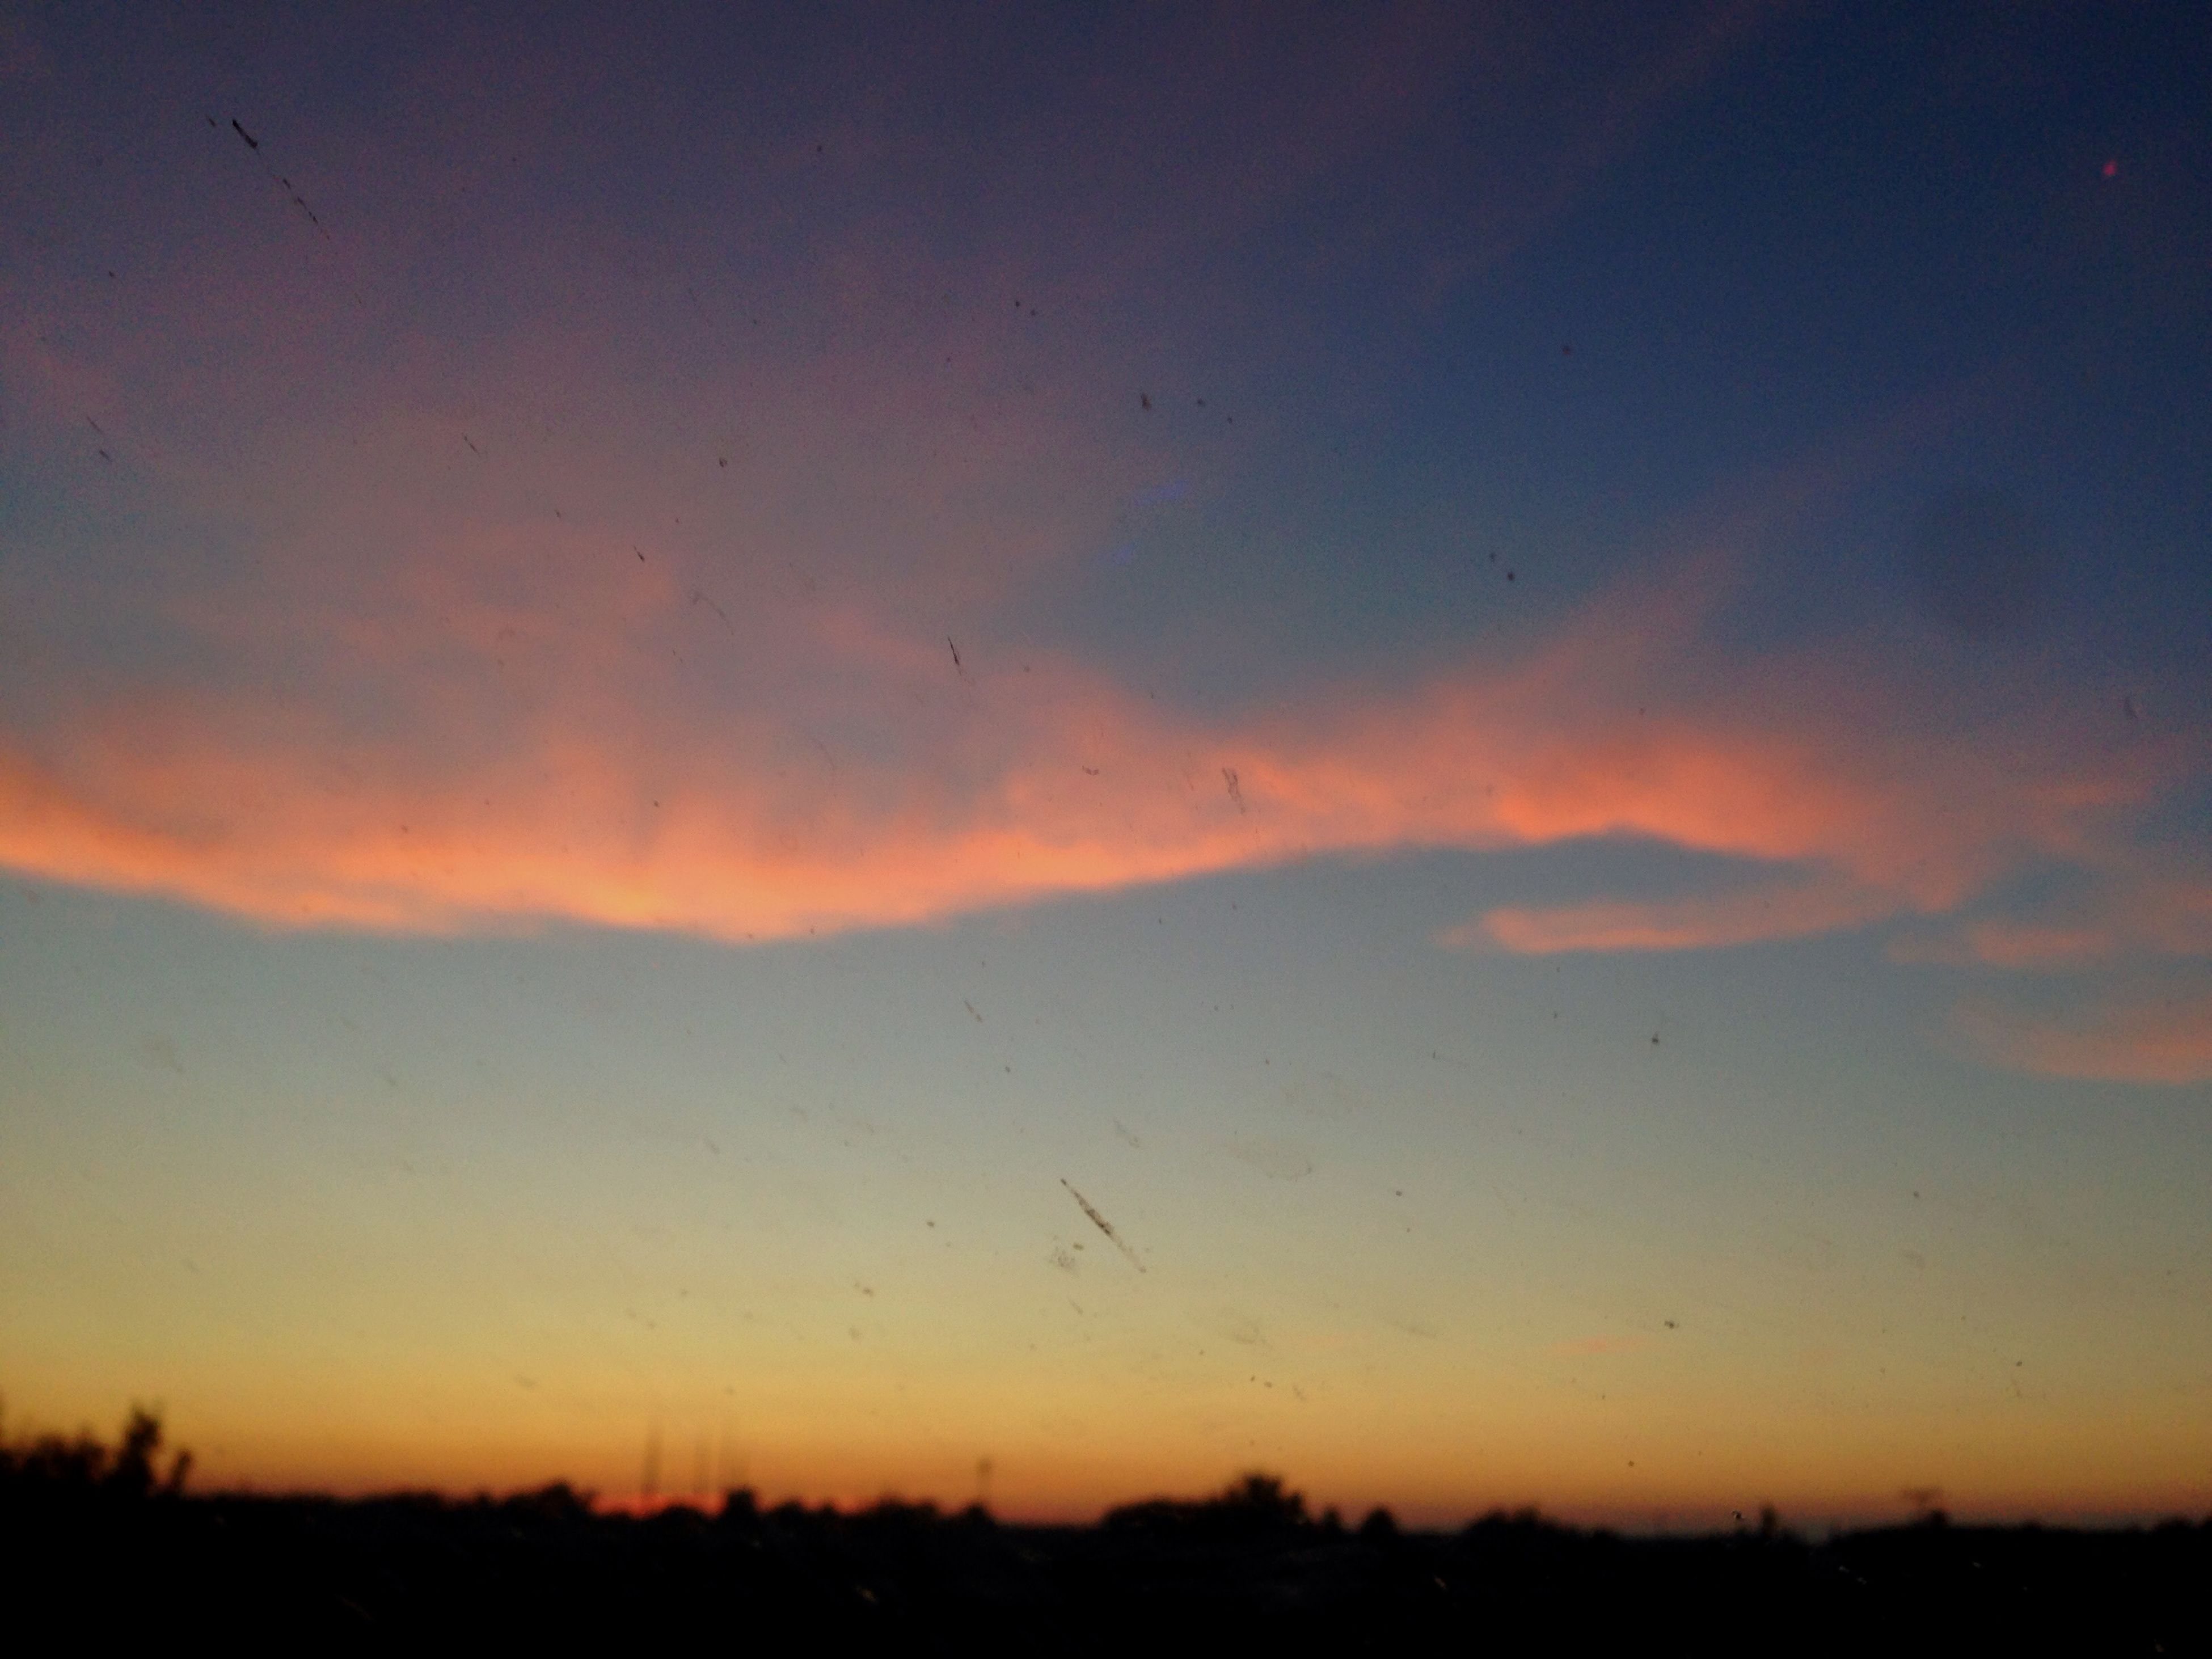 sunset, silhouette, tranquil scene, sky, scenics, tranquility, beauty in nature, orange color, flying, nature, animal themes, bird, landscape, idyllic, dusk, animals in the wild, wildlife, outdoors, field, outline